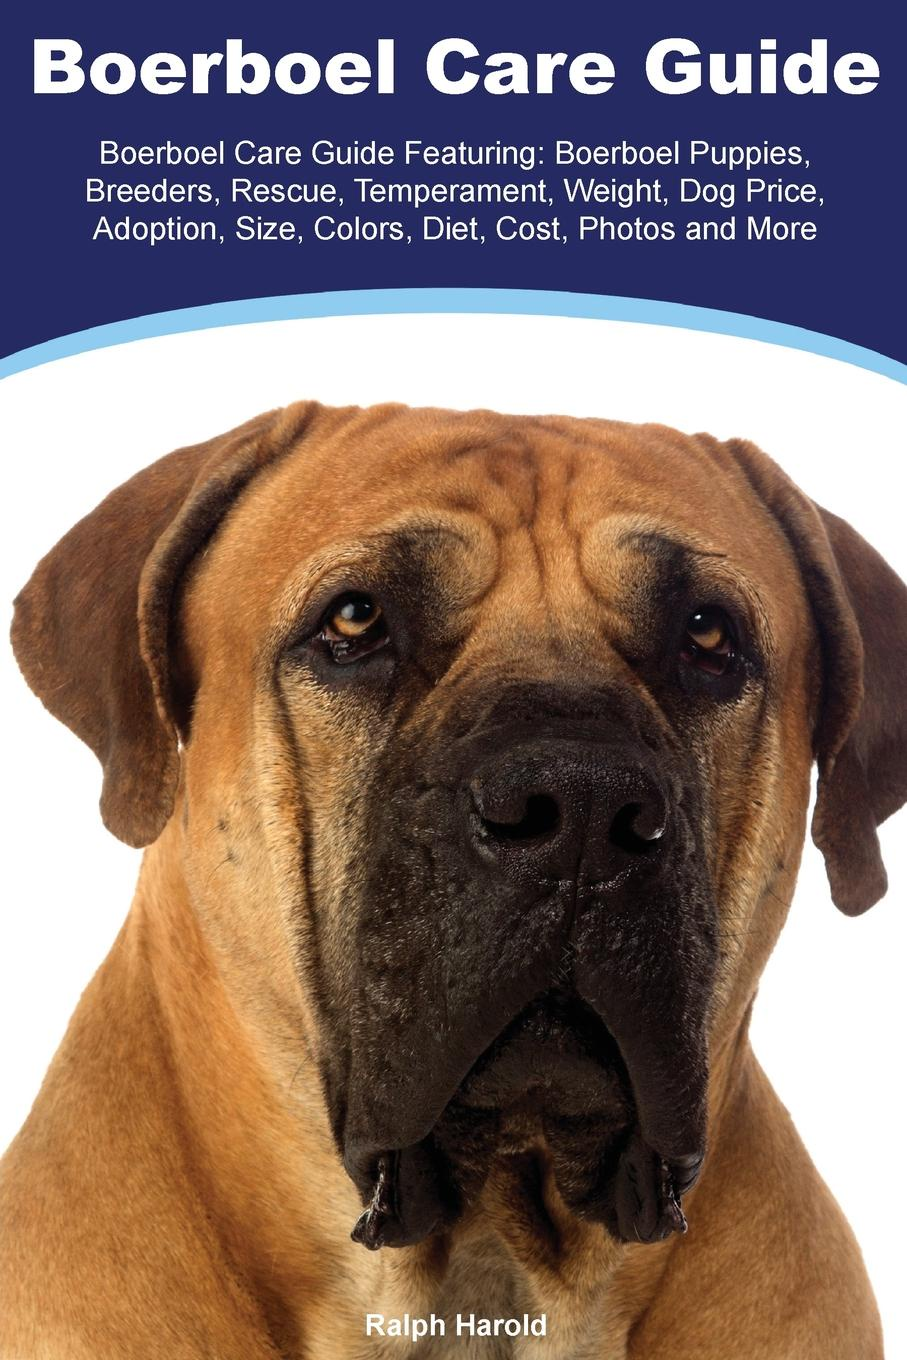 Фото - Ralph Harold Boerboel Boerboel Care Guide Featuring. Boerboel Puppies, Breeders, Rescue, Temperament, Weight, Dog Price, Adoption, Size, Colors, Diet, Cost, Photos and More harry holstone boerboel the boerboel dog owner s manual boerboel dog care personality grooming health costs and feeding all included